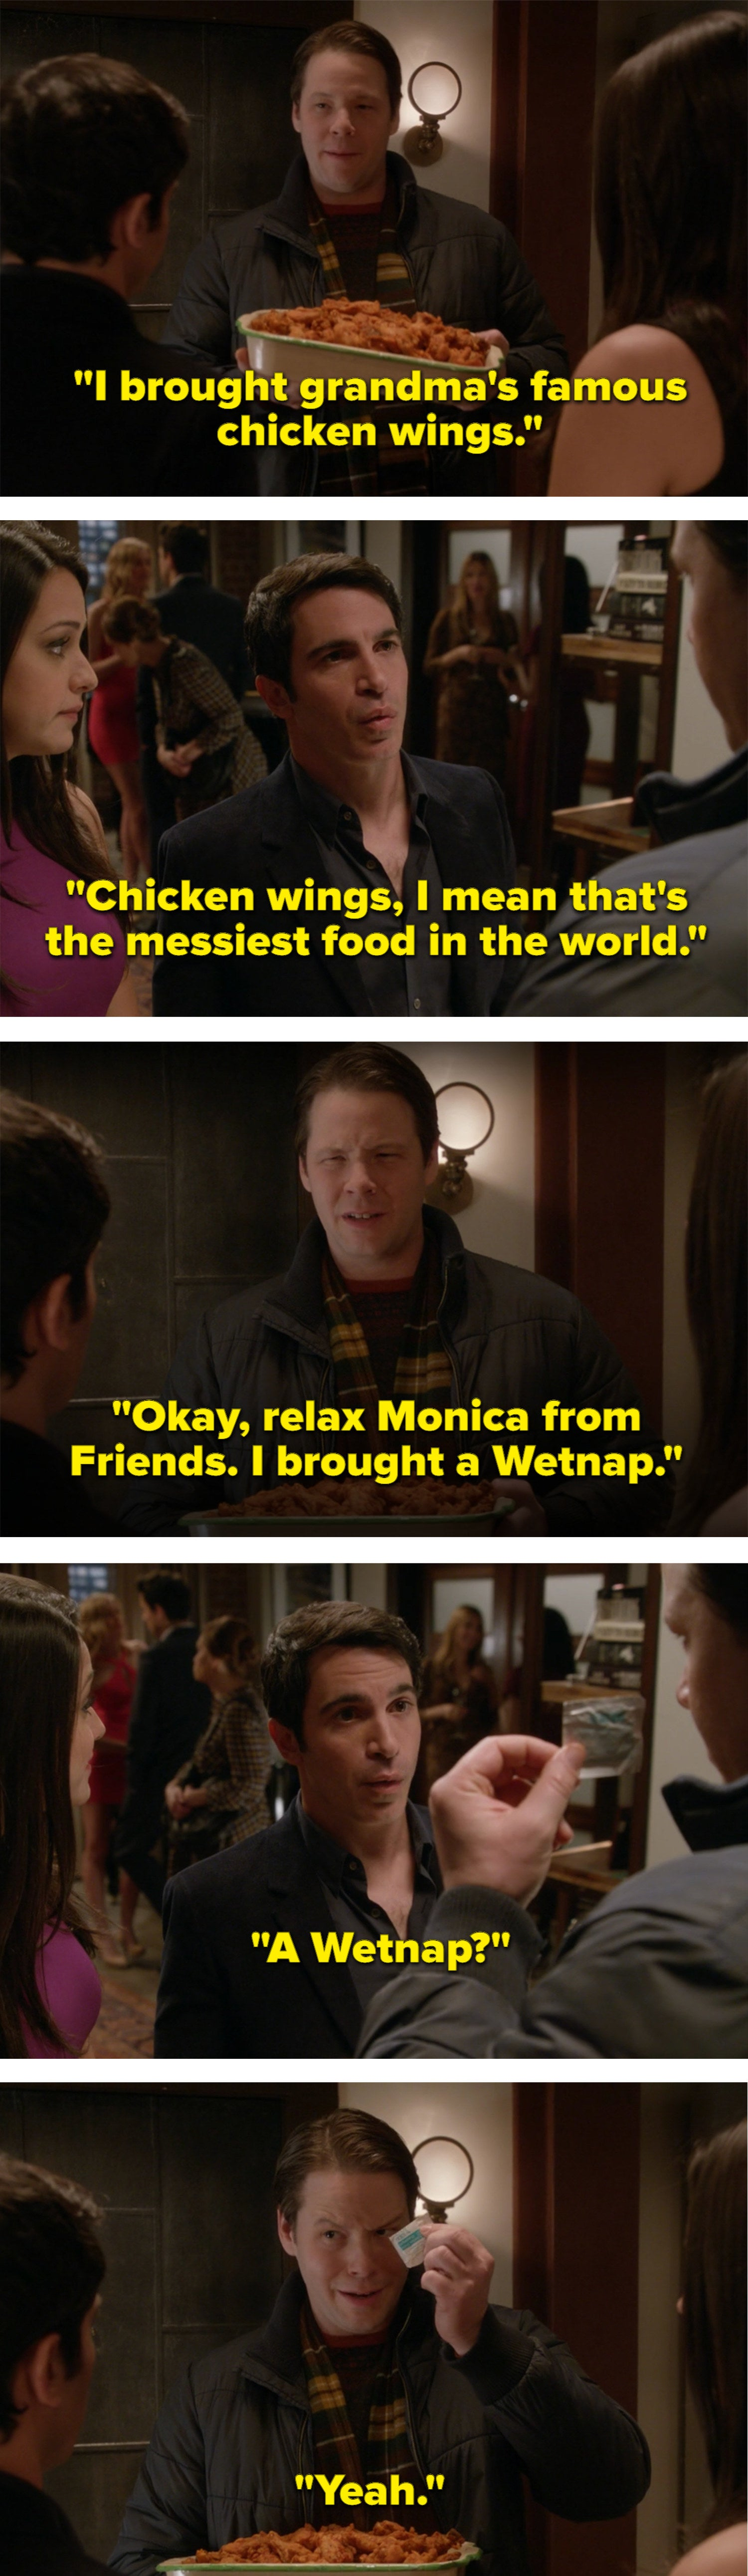 Morgan brings a tray of messy chicken wings to Danny's apartment along with a single Wetnap wipe